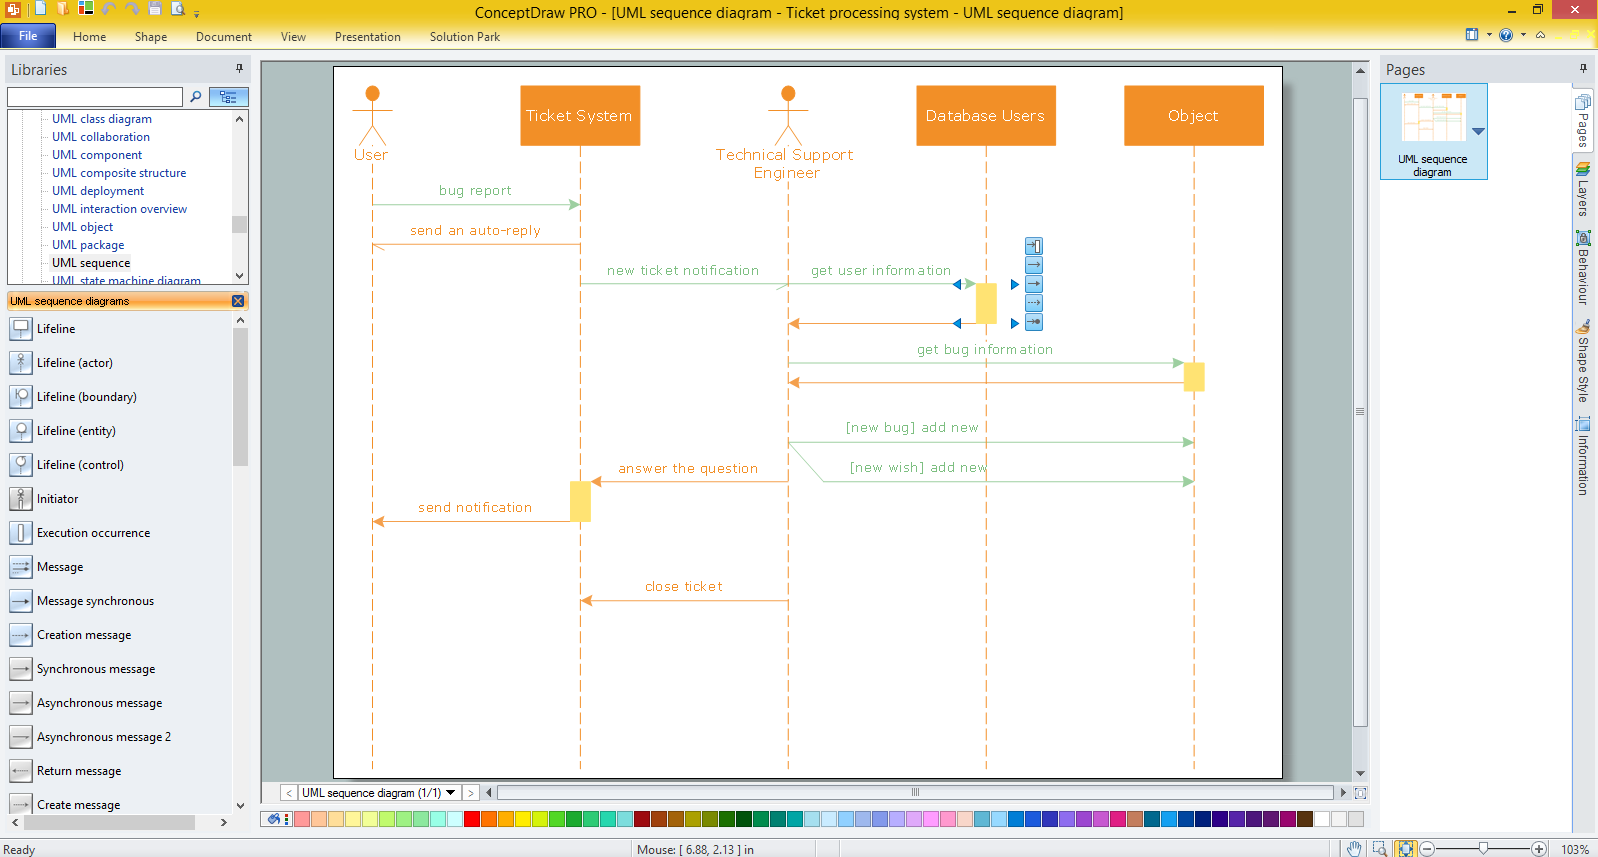 Sequence diagram creation tool download wiring diagrams uml sequence diagram example svg vectored uml diagrams tools rh conceptdraw com sequence diagram draw tool ccuart Image collections